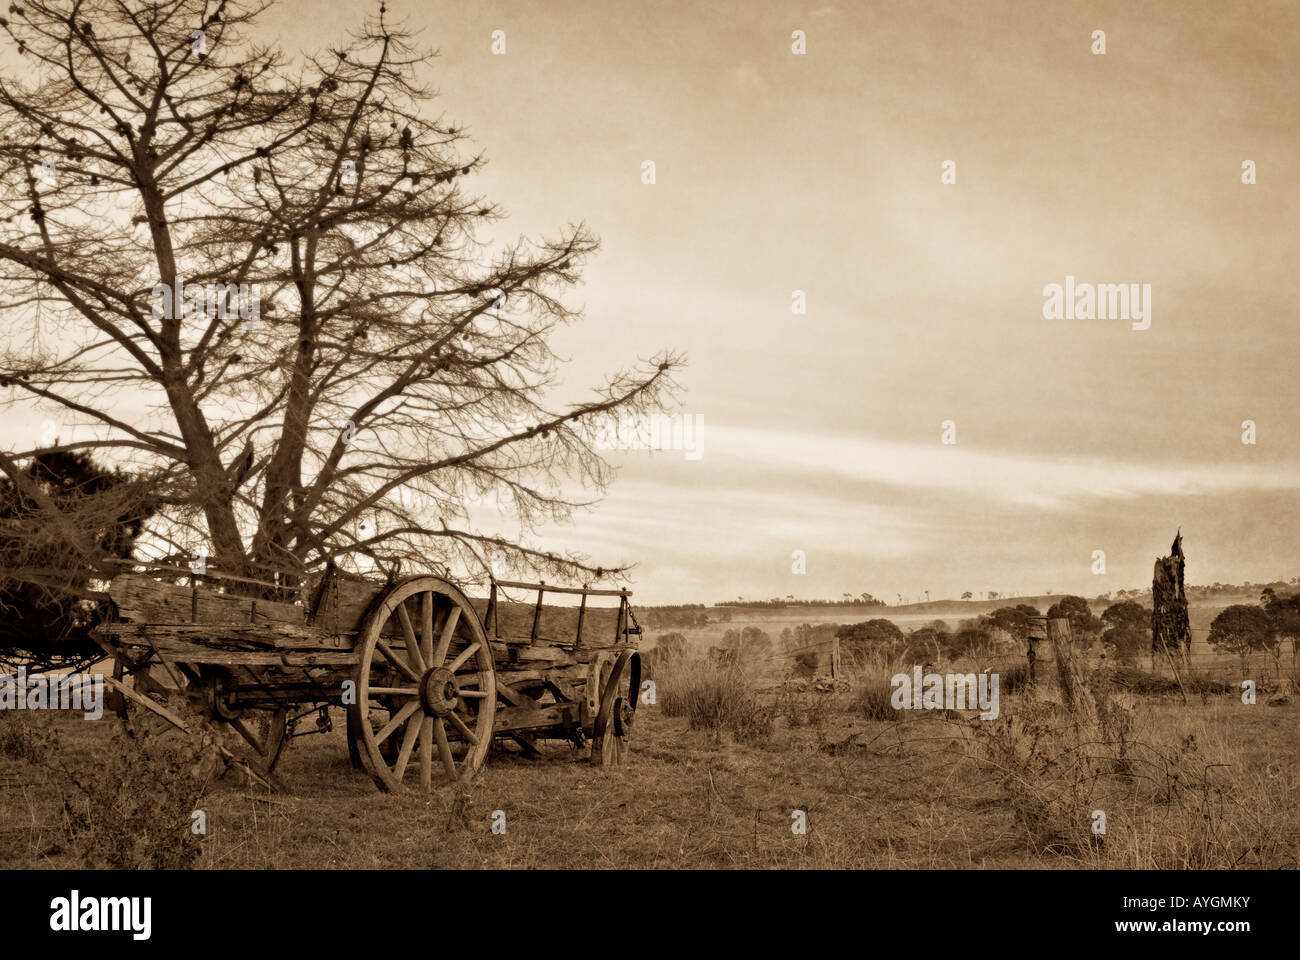 sepia and slightly grungy image of an old farm wagon - Stock Image